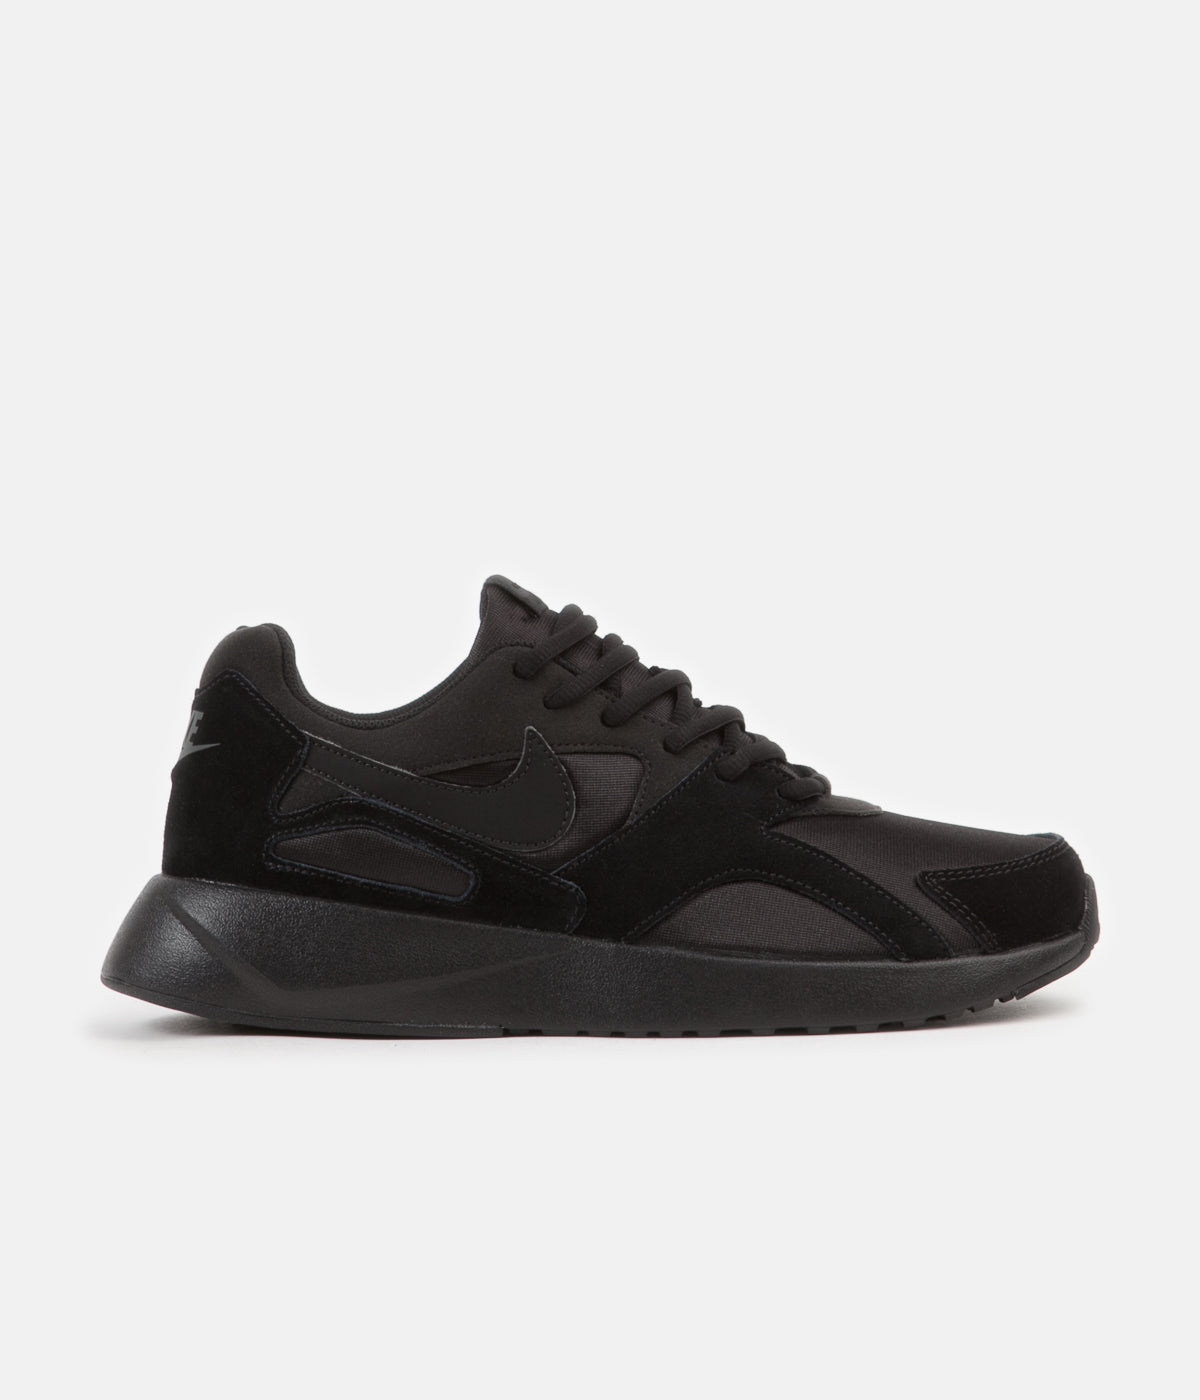 Nike Pantheos Shoes - Black / Black - Anthracite | Always in ...